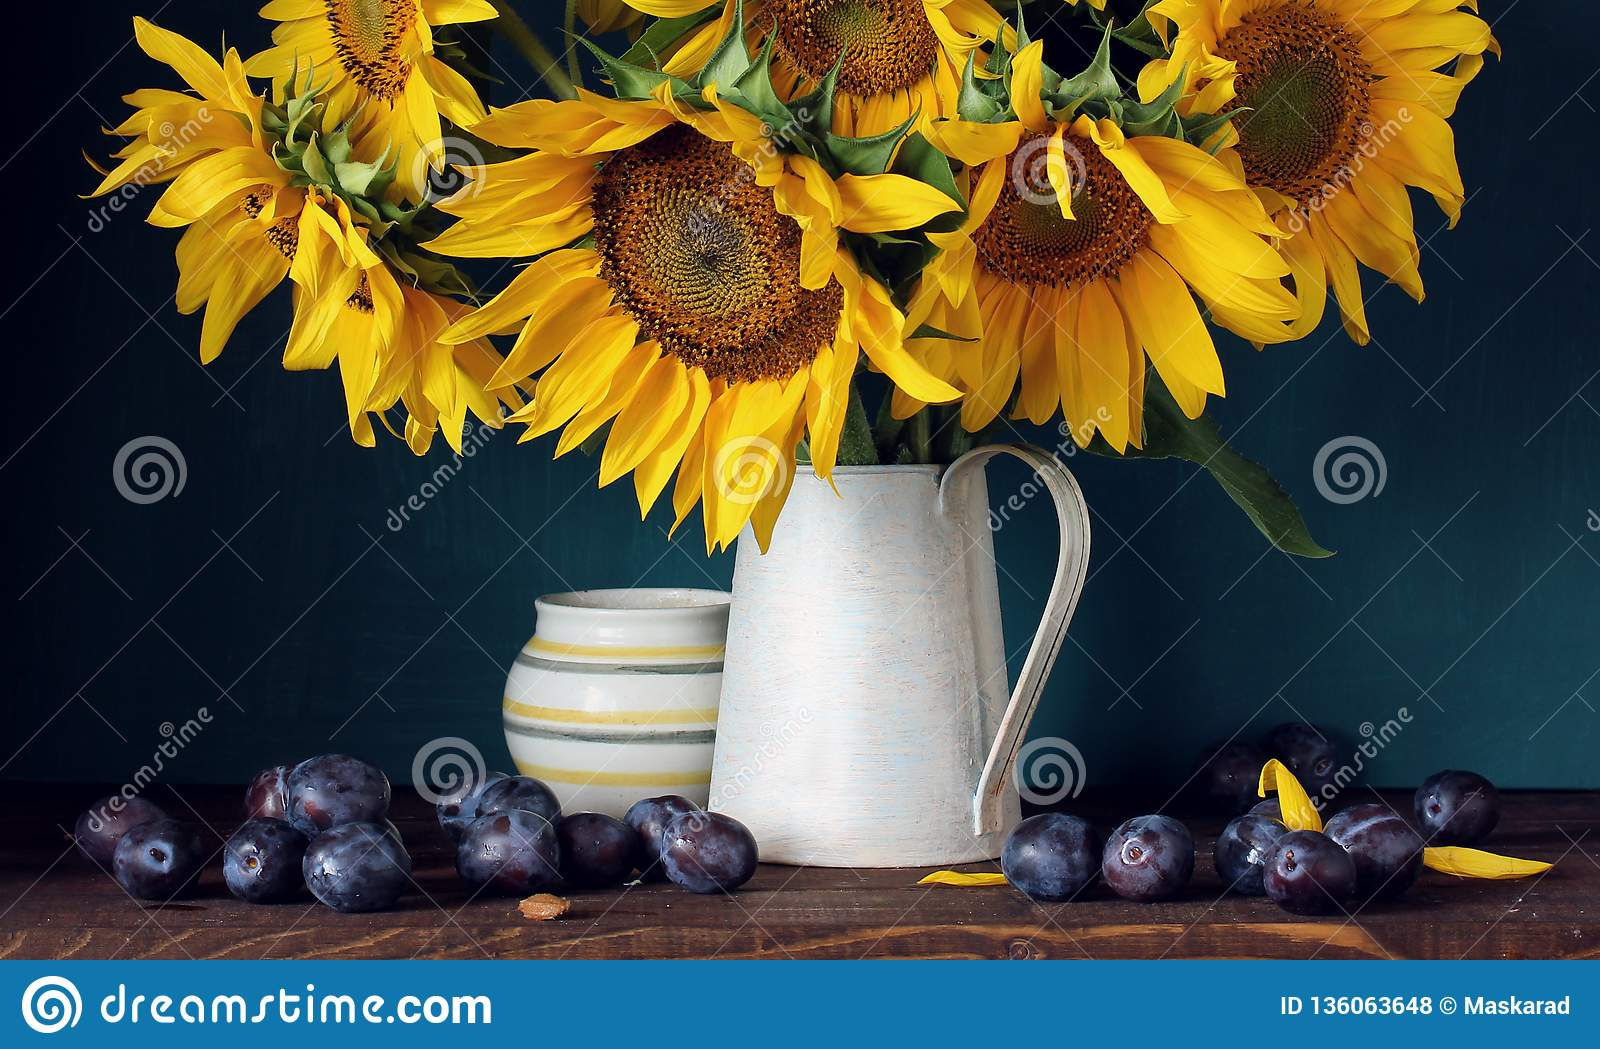 Sunflowers and purple plums. flowers and fruit